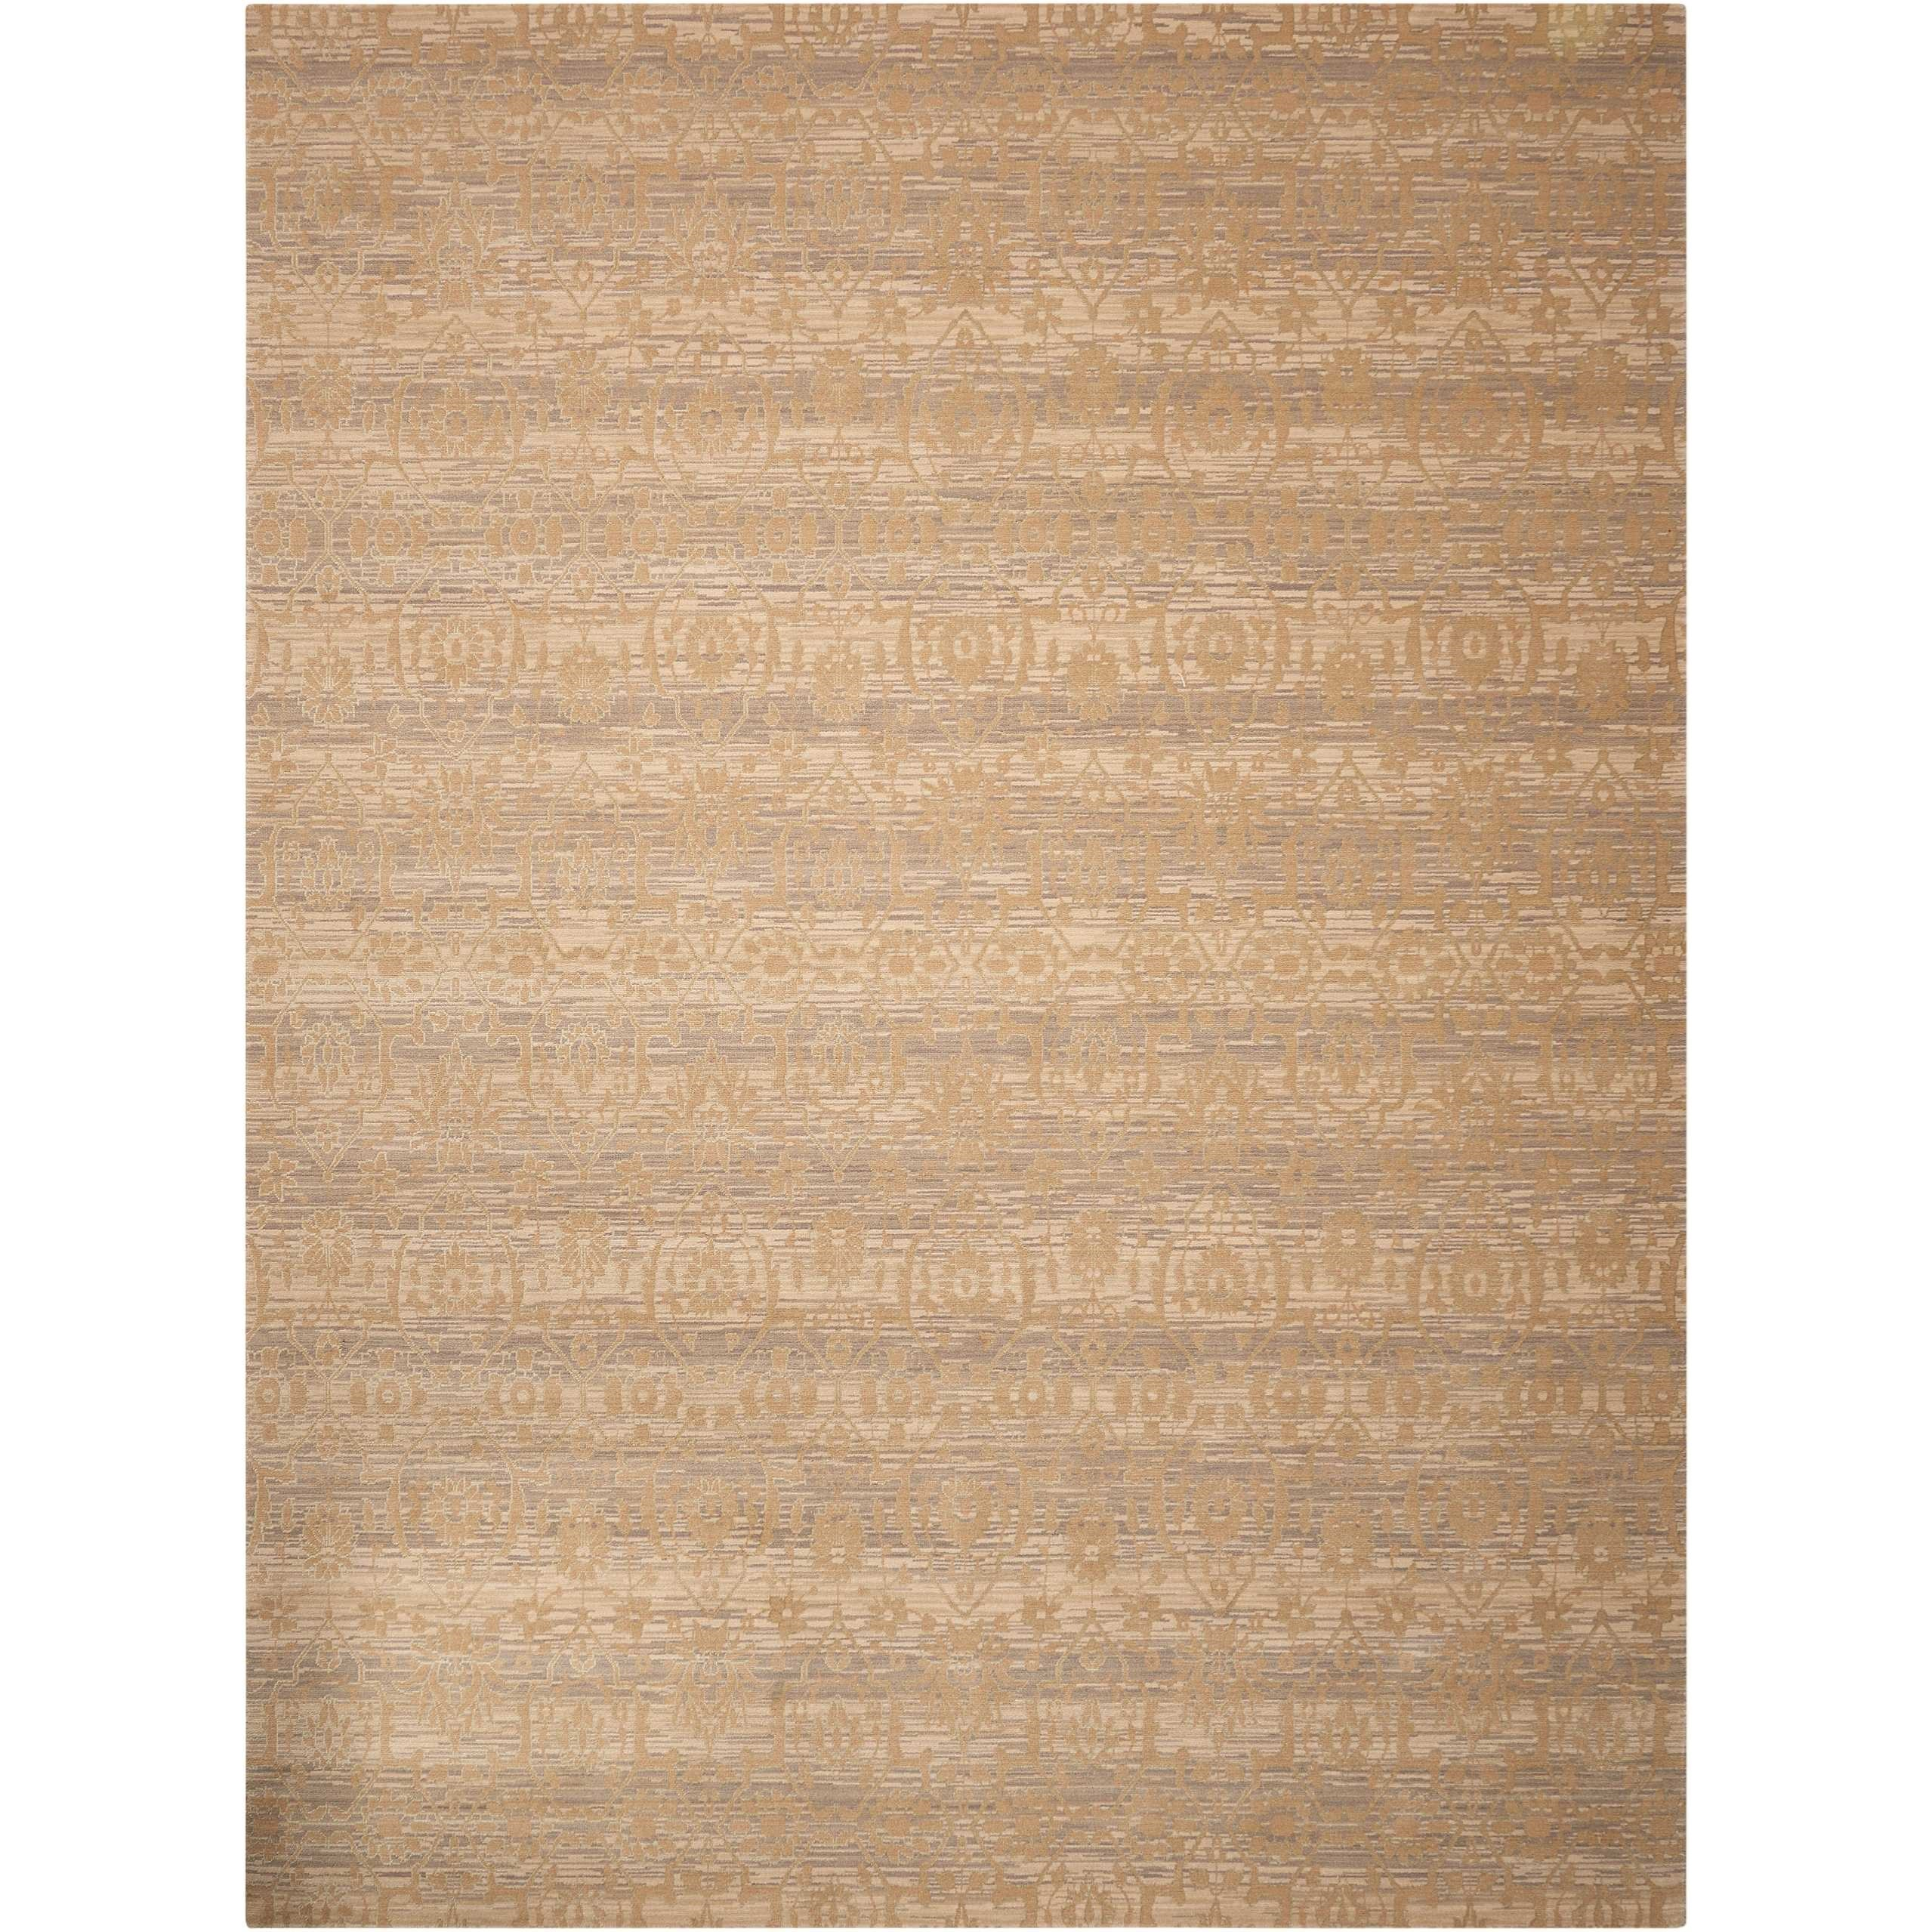 """Silken Allure 7'9"""" x 9'9"""" Sand Rectangle Rug by Nourison at Home Collections Furniture"""